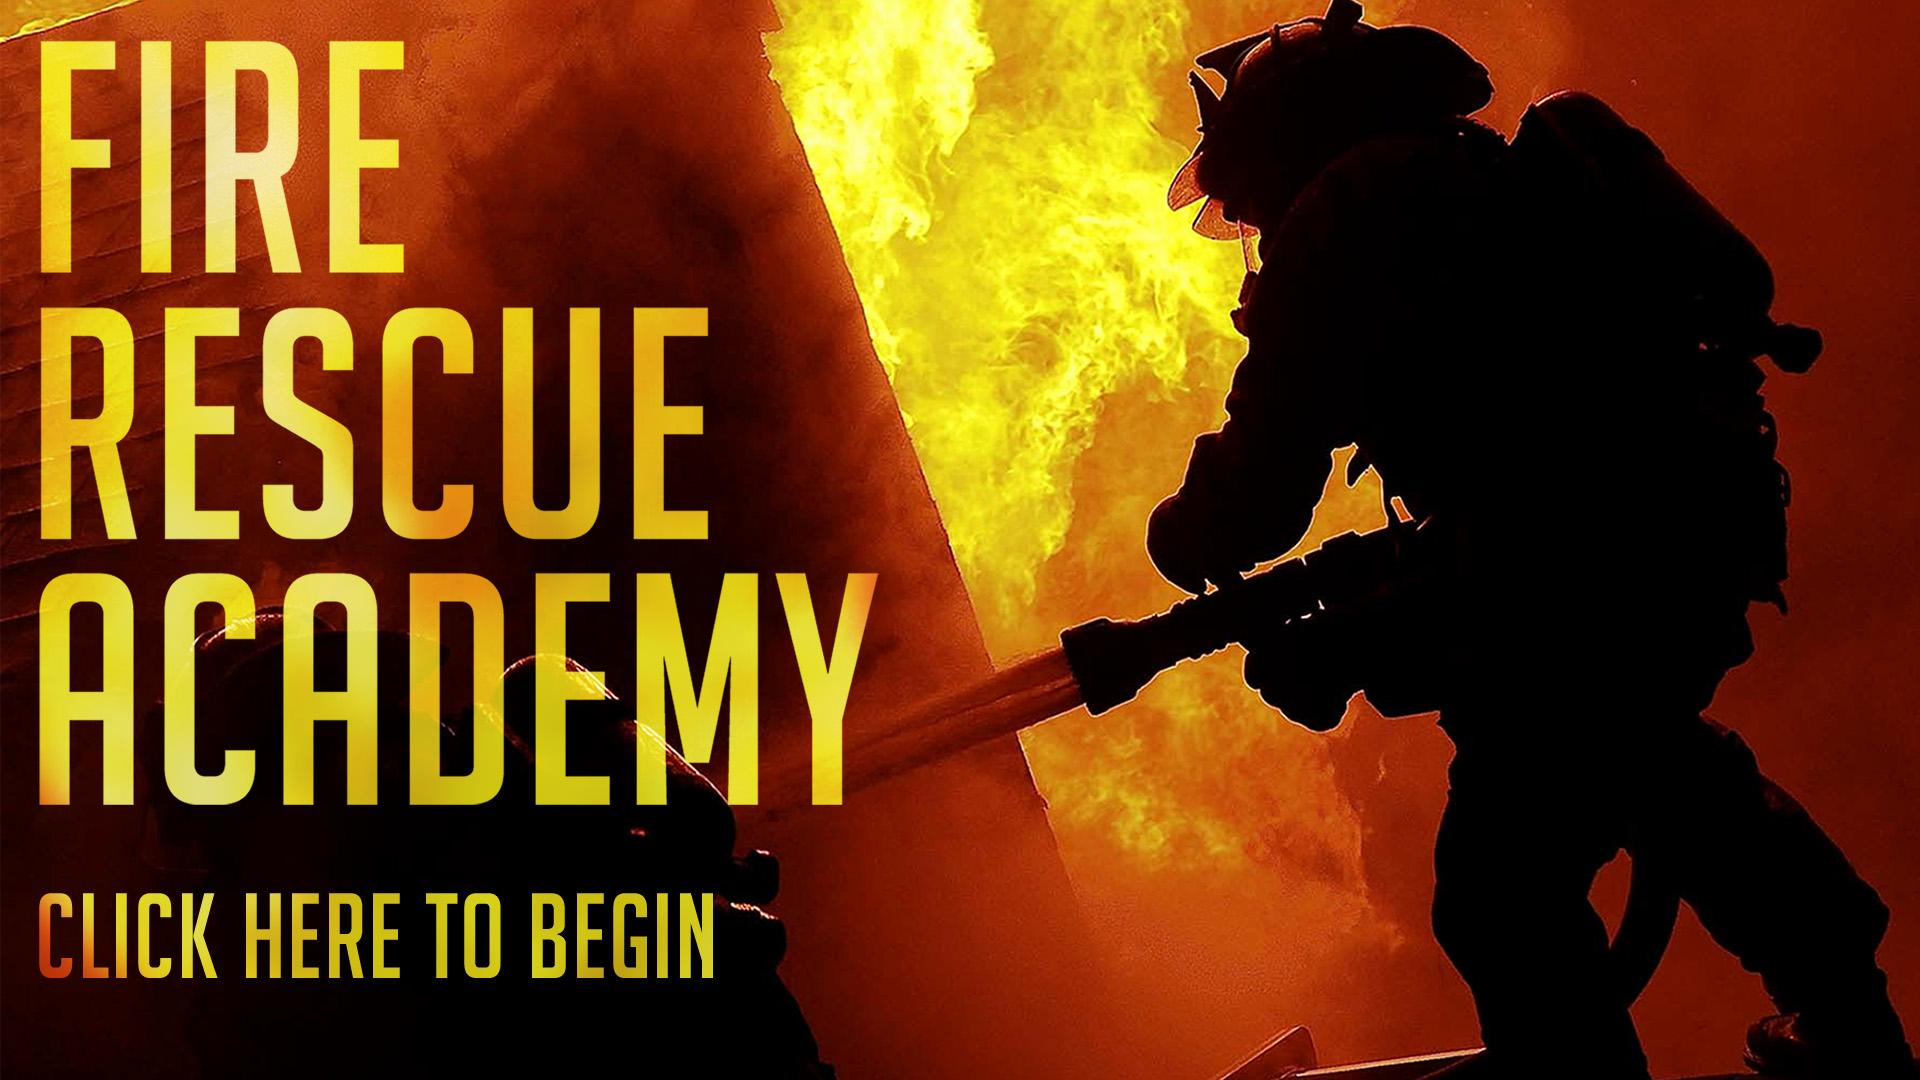 Fire & Rescue Academy - Click Here to Begin. Applications must be received by Monday, July 1 at 17:00